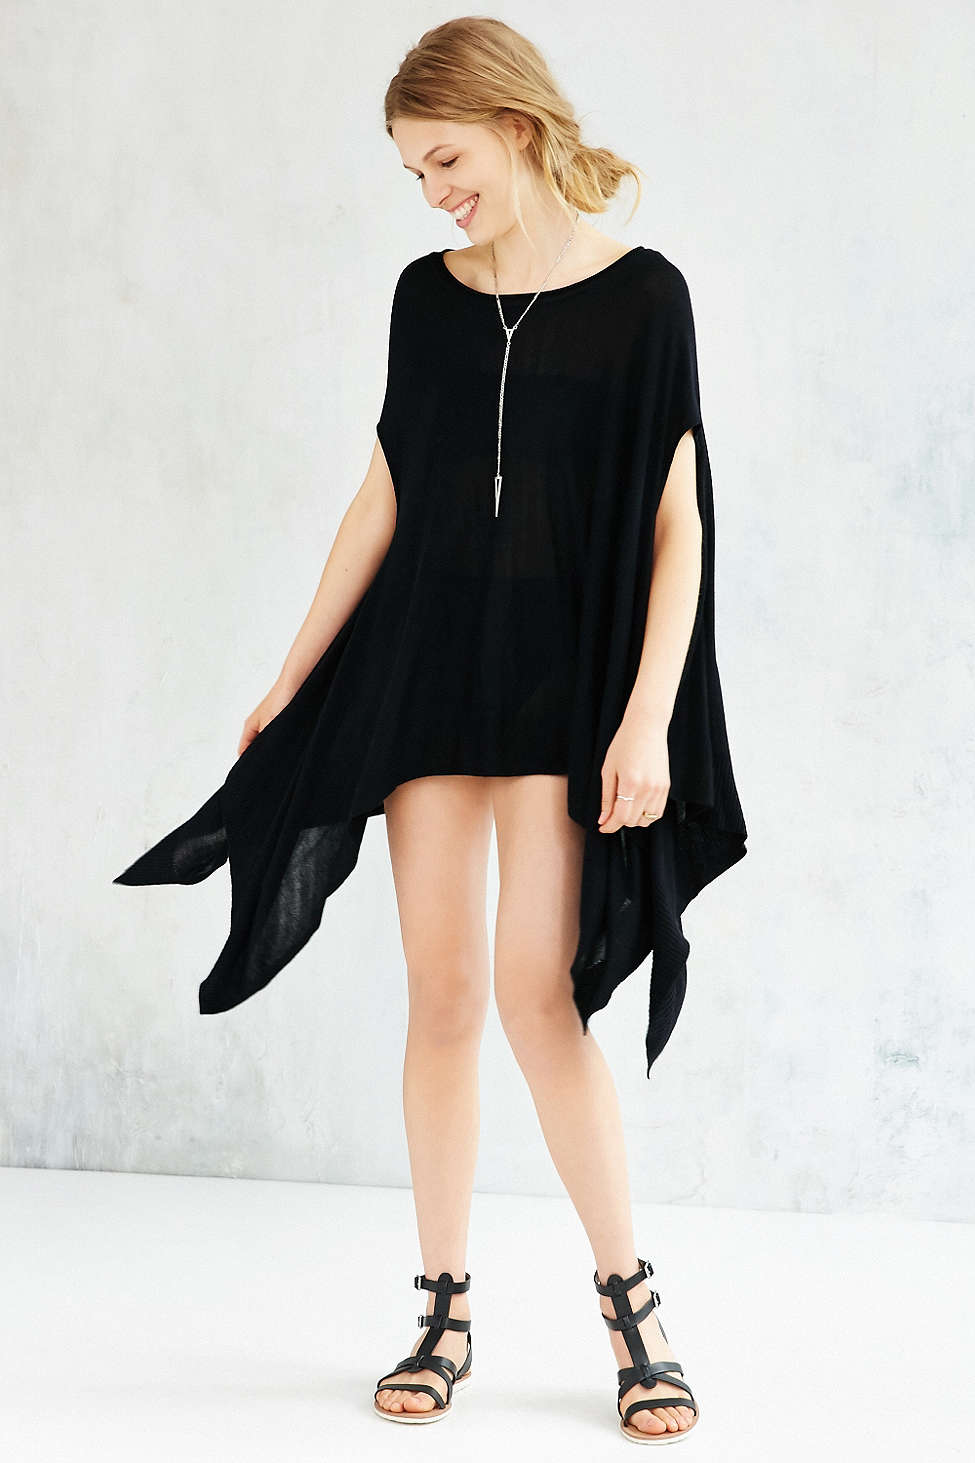 Silence + Noise Alina Poncho Sweater, $69 at UrbanOutfitters.com.